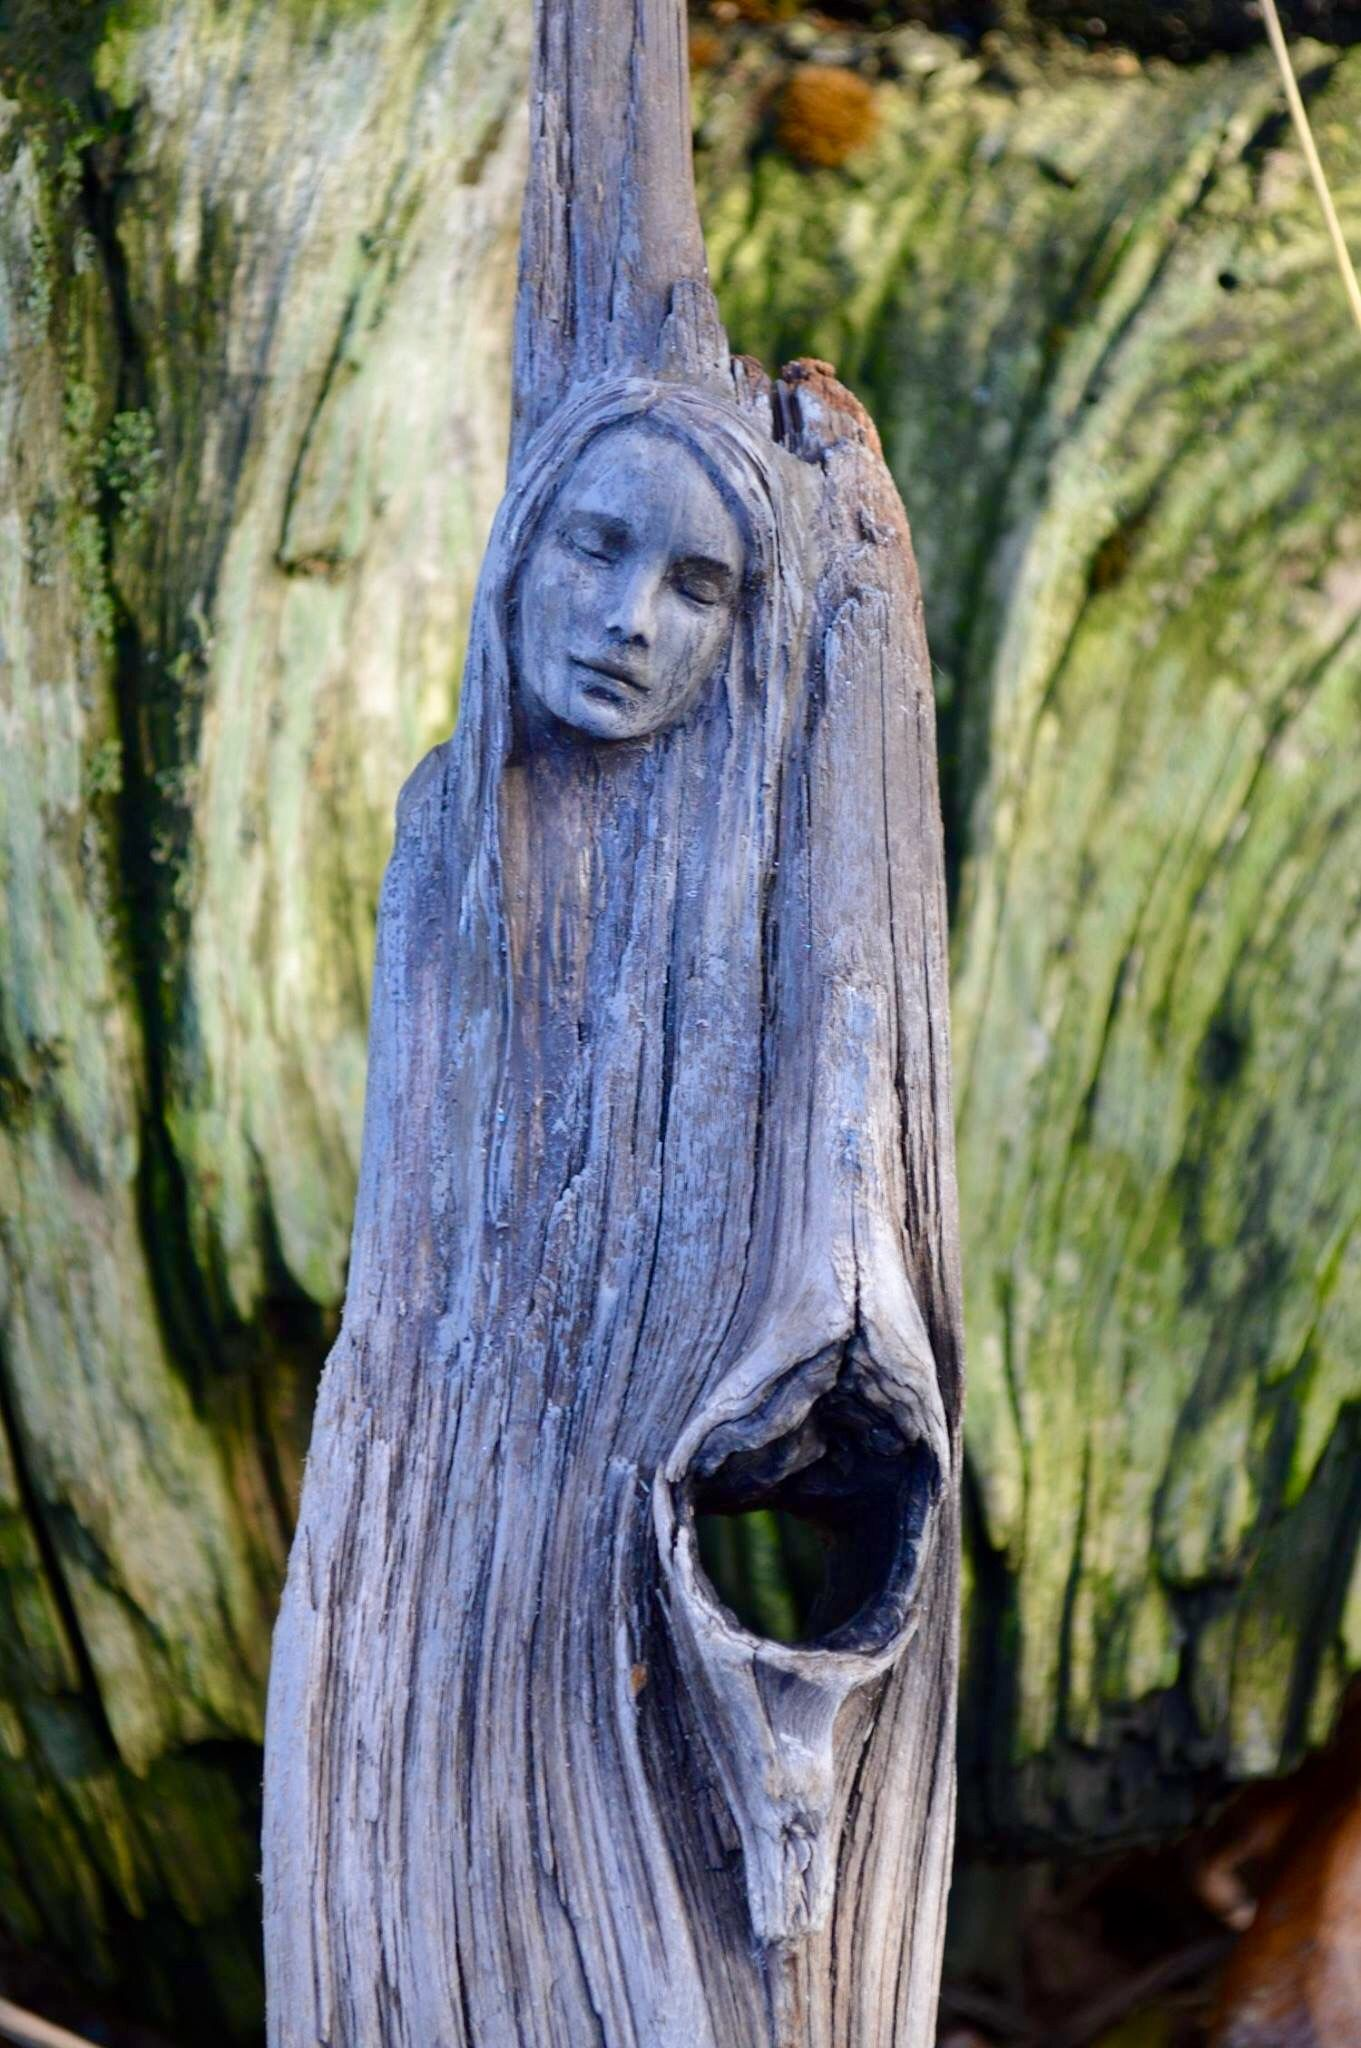 Wood Carving Art Image By Theresa Leitch On Debra Bernier